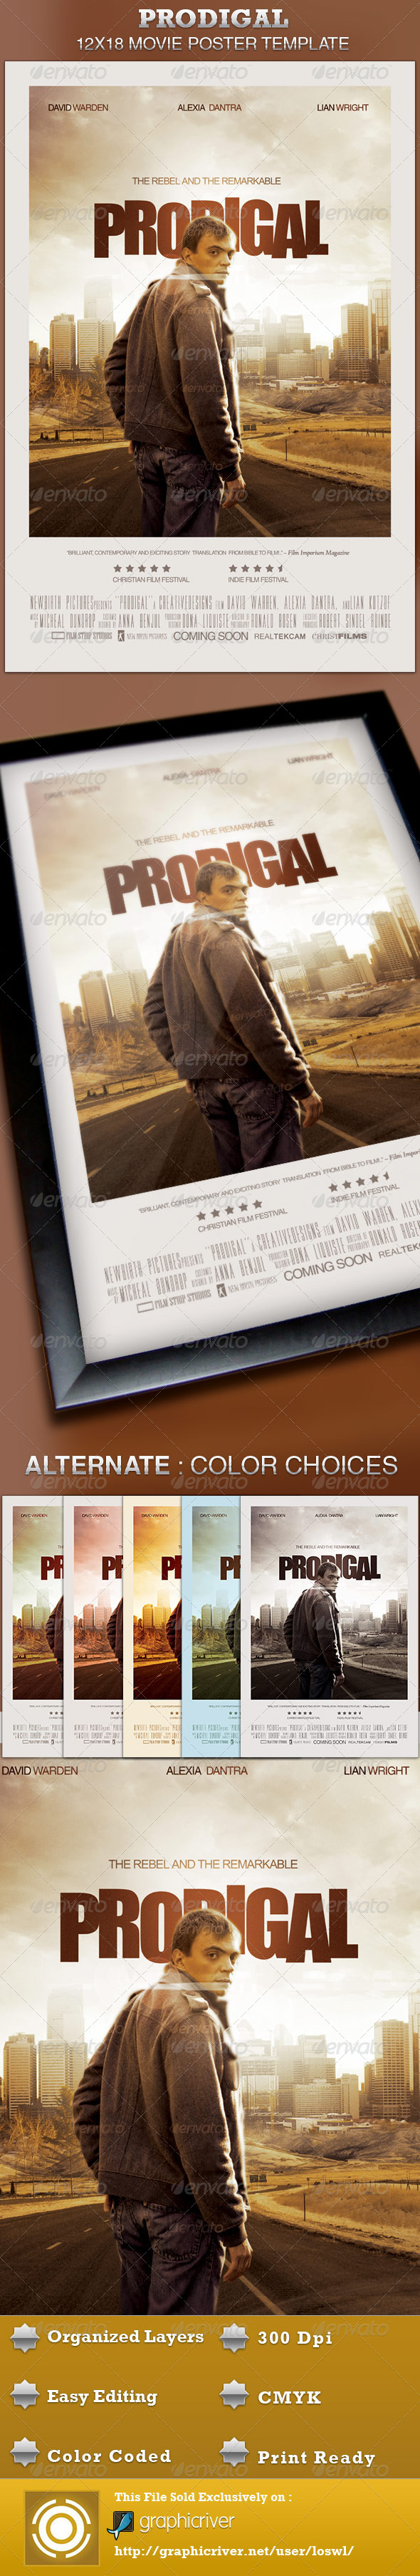 Editable movie poster credit template